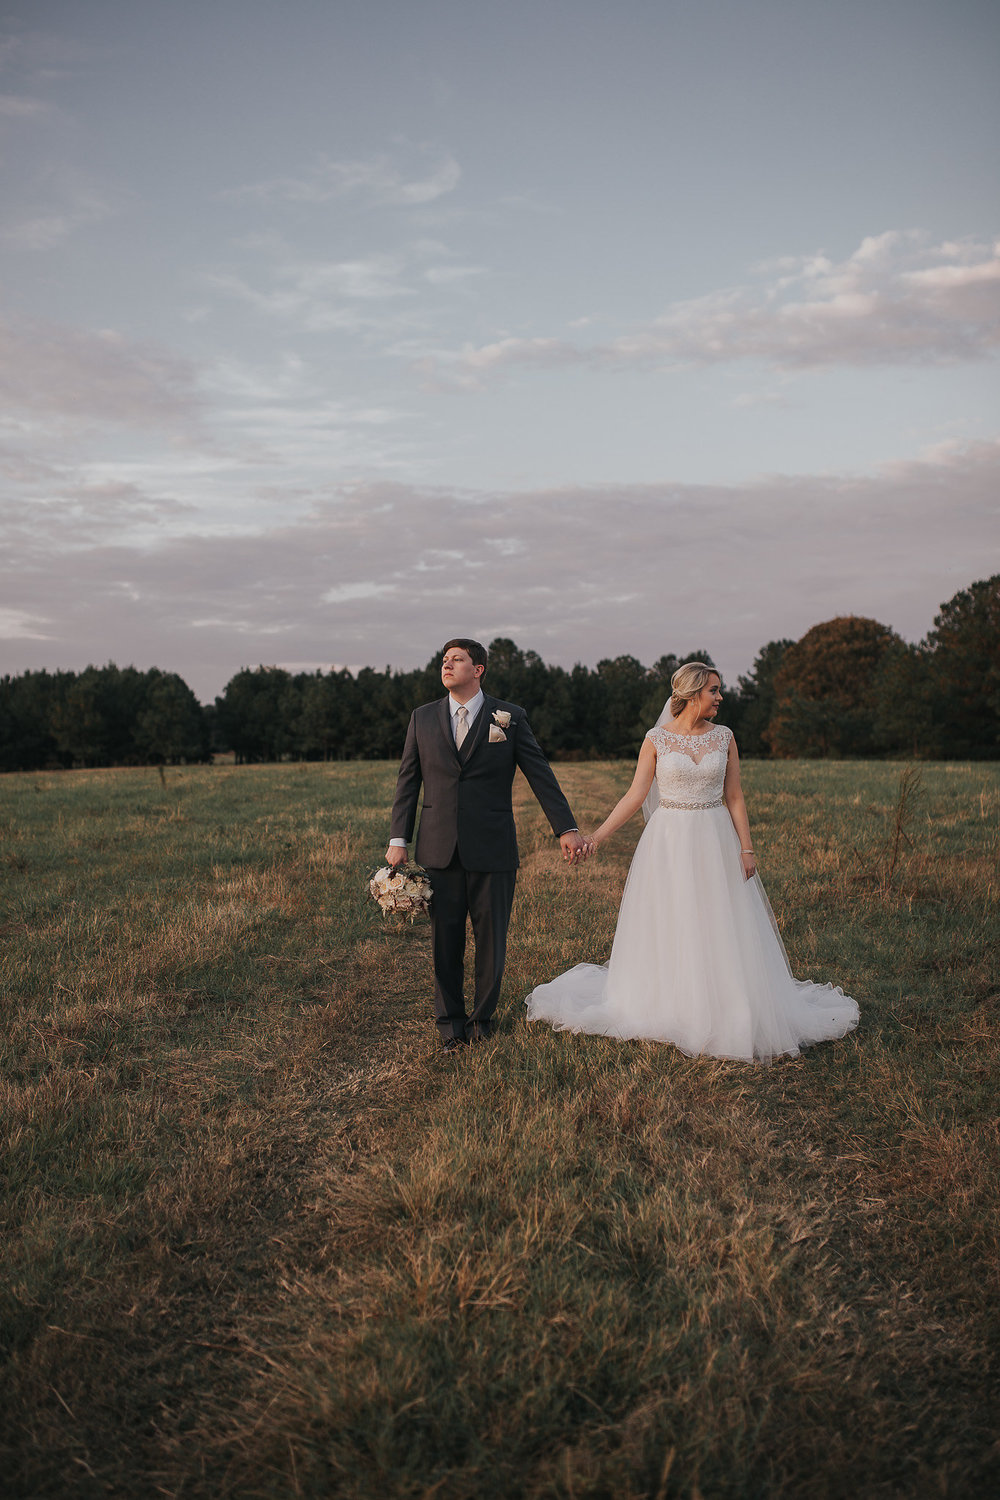 Weddings + Events Portfolio - Whether you're looking for inspiration for your big day, or you just want to see wedding day bliss, these